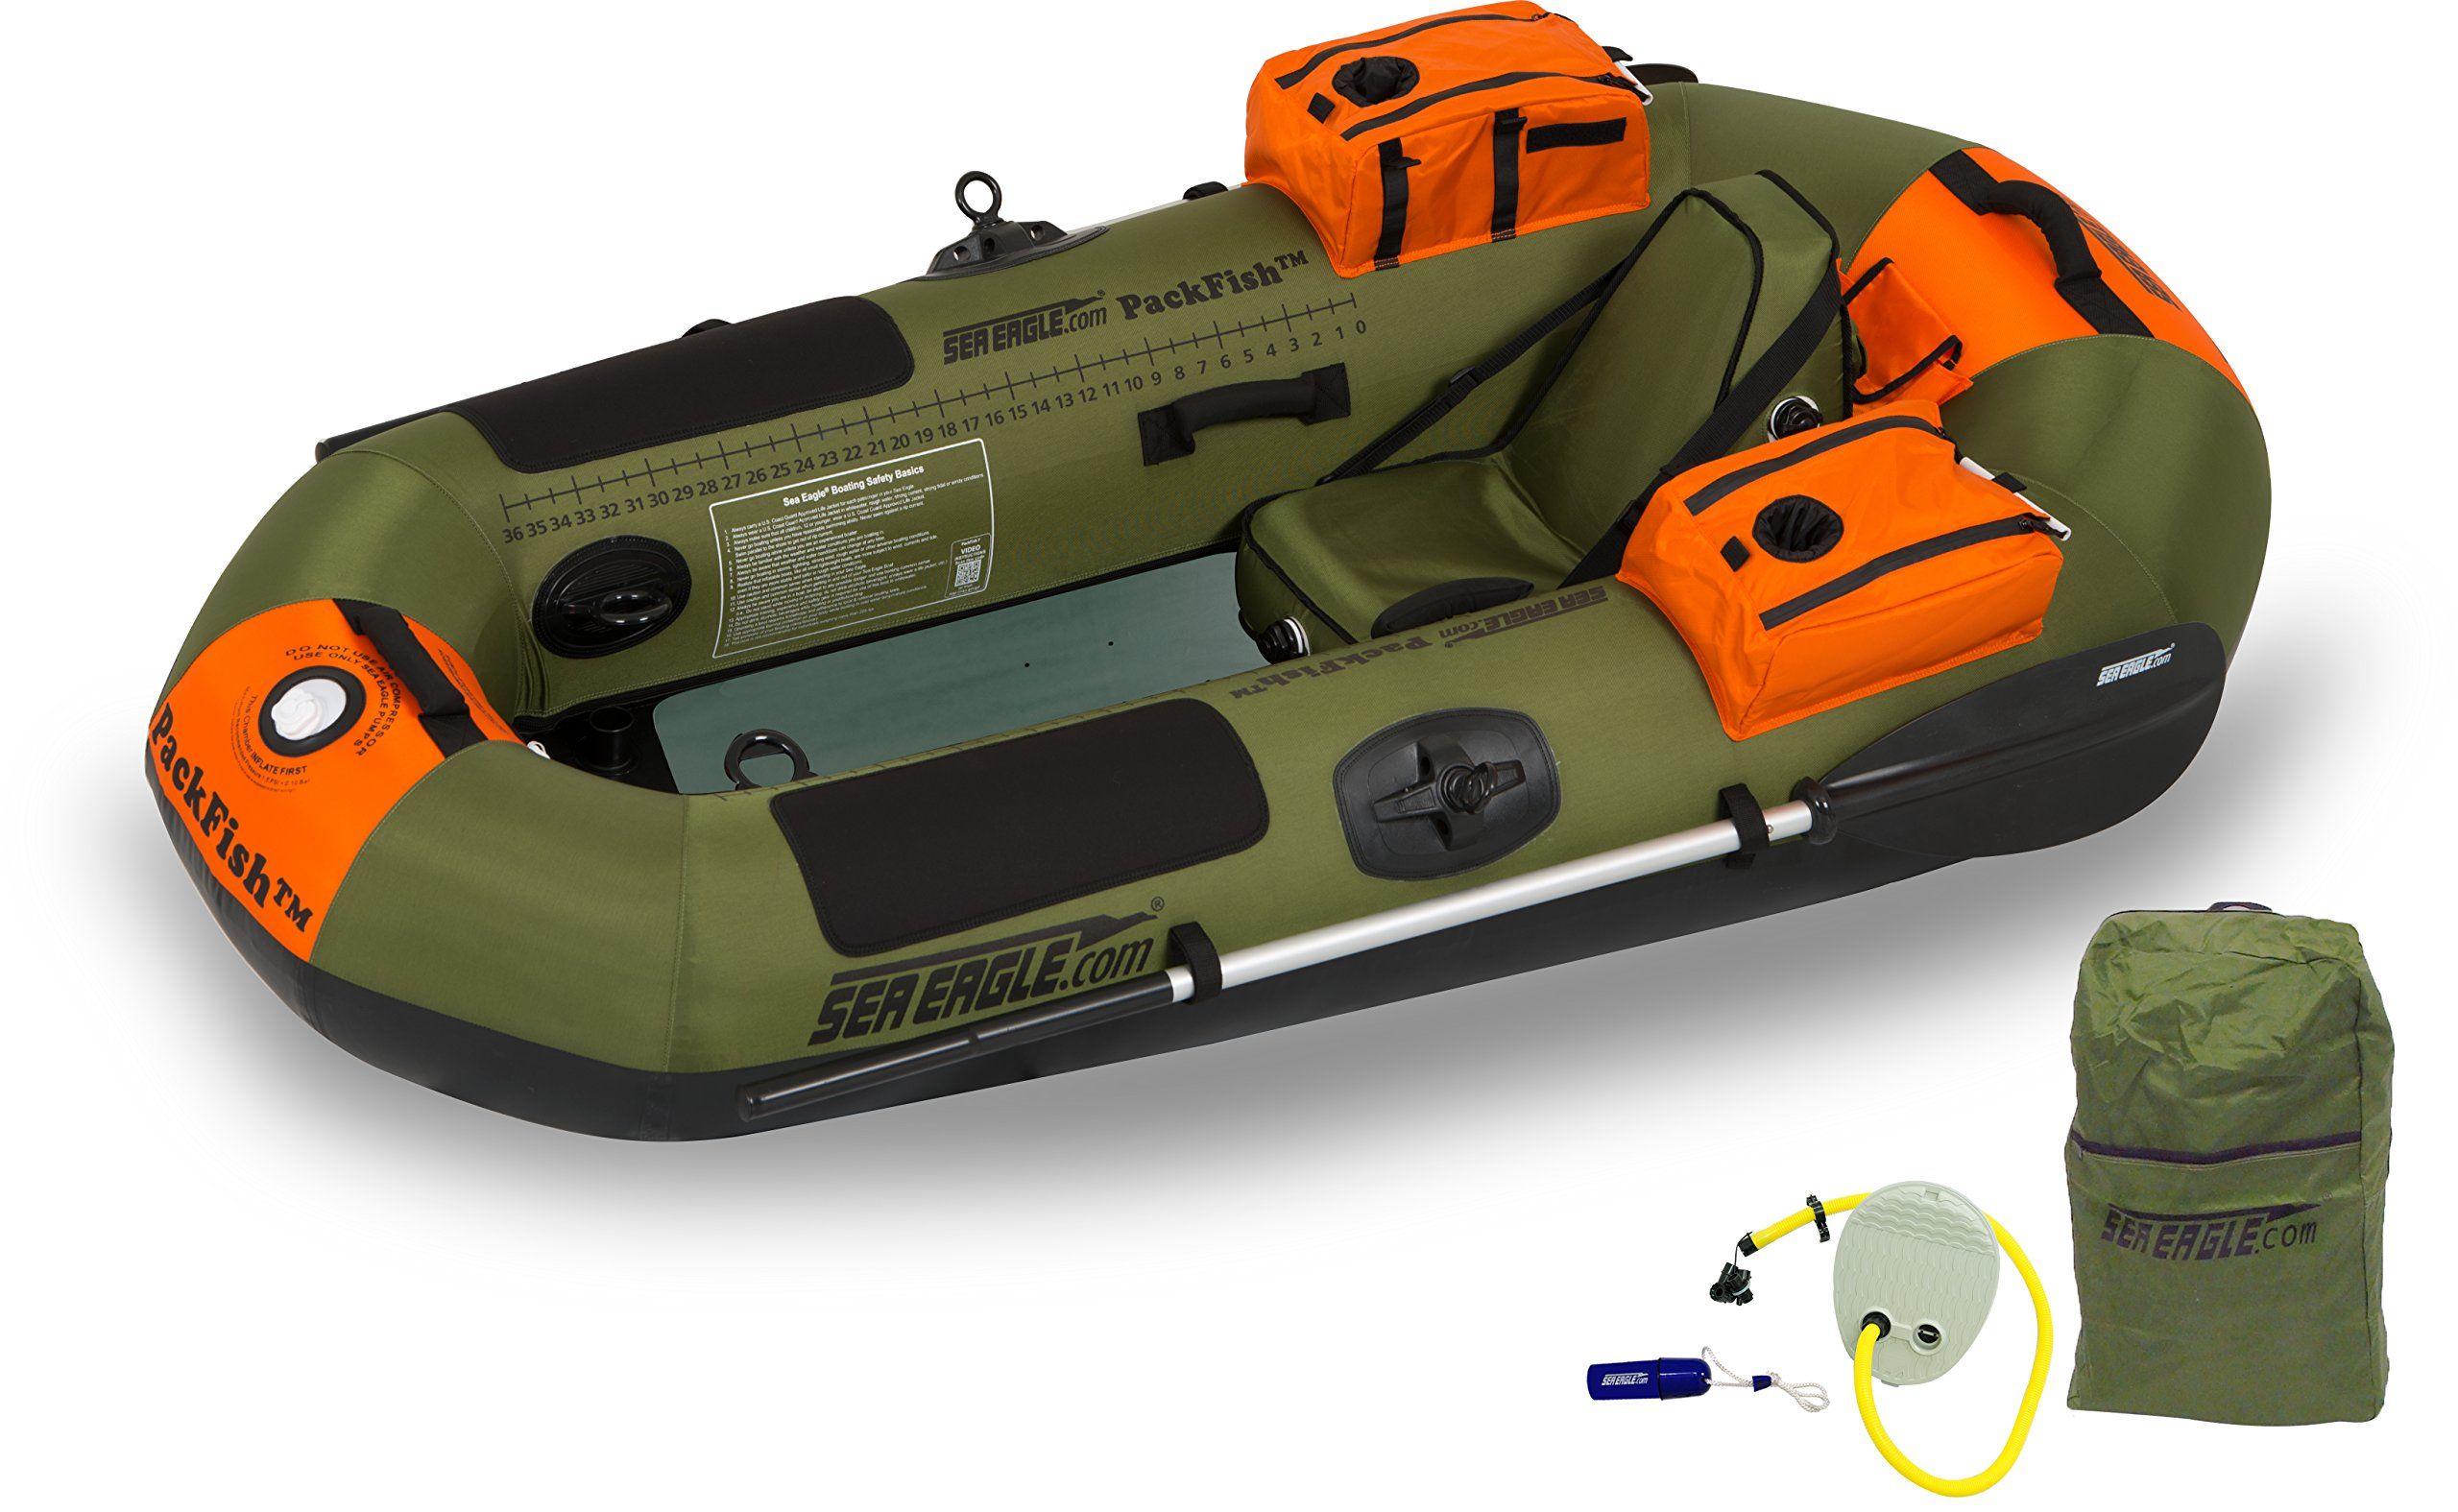 Sea Eagle PF7K PackFish Inflatable Boat Pro Fishing Package by Sea Eagle